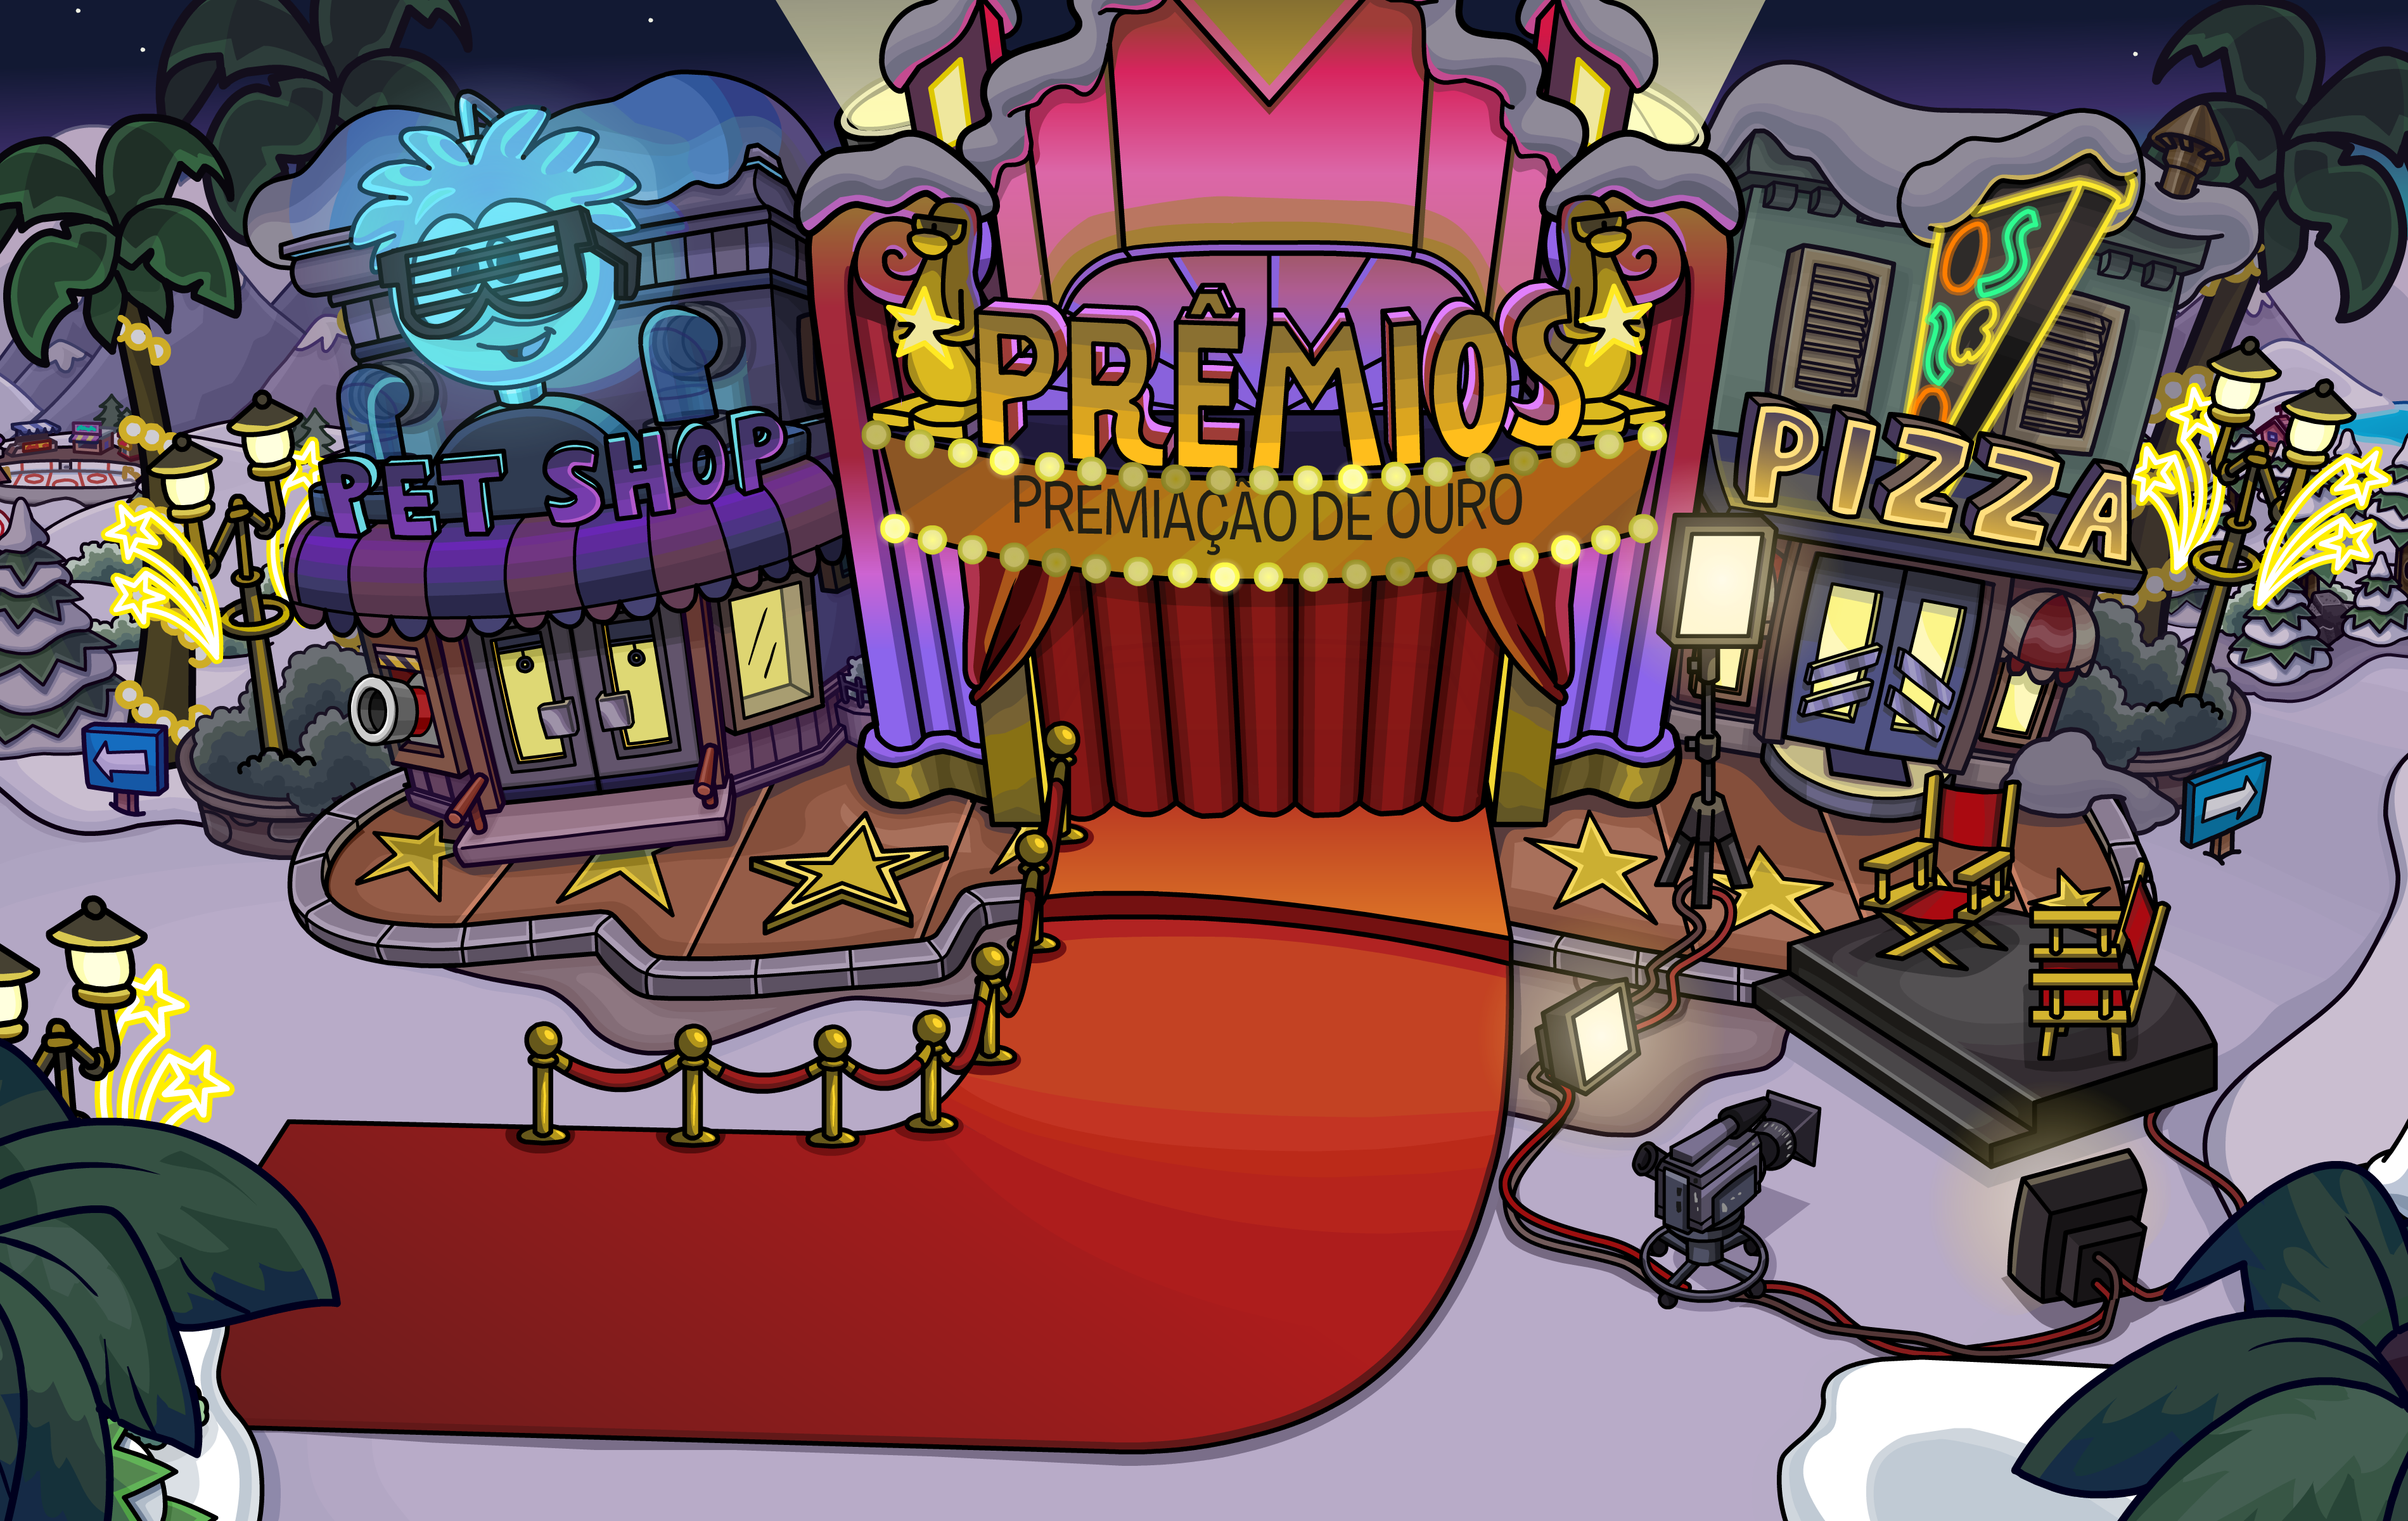 http://pt.clubpenguinwiki.info/static/images/cpwpt/b/b8/PlazaLuzC%C3%A2meraHollywood.png